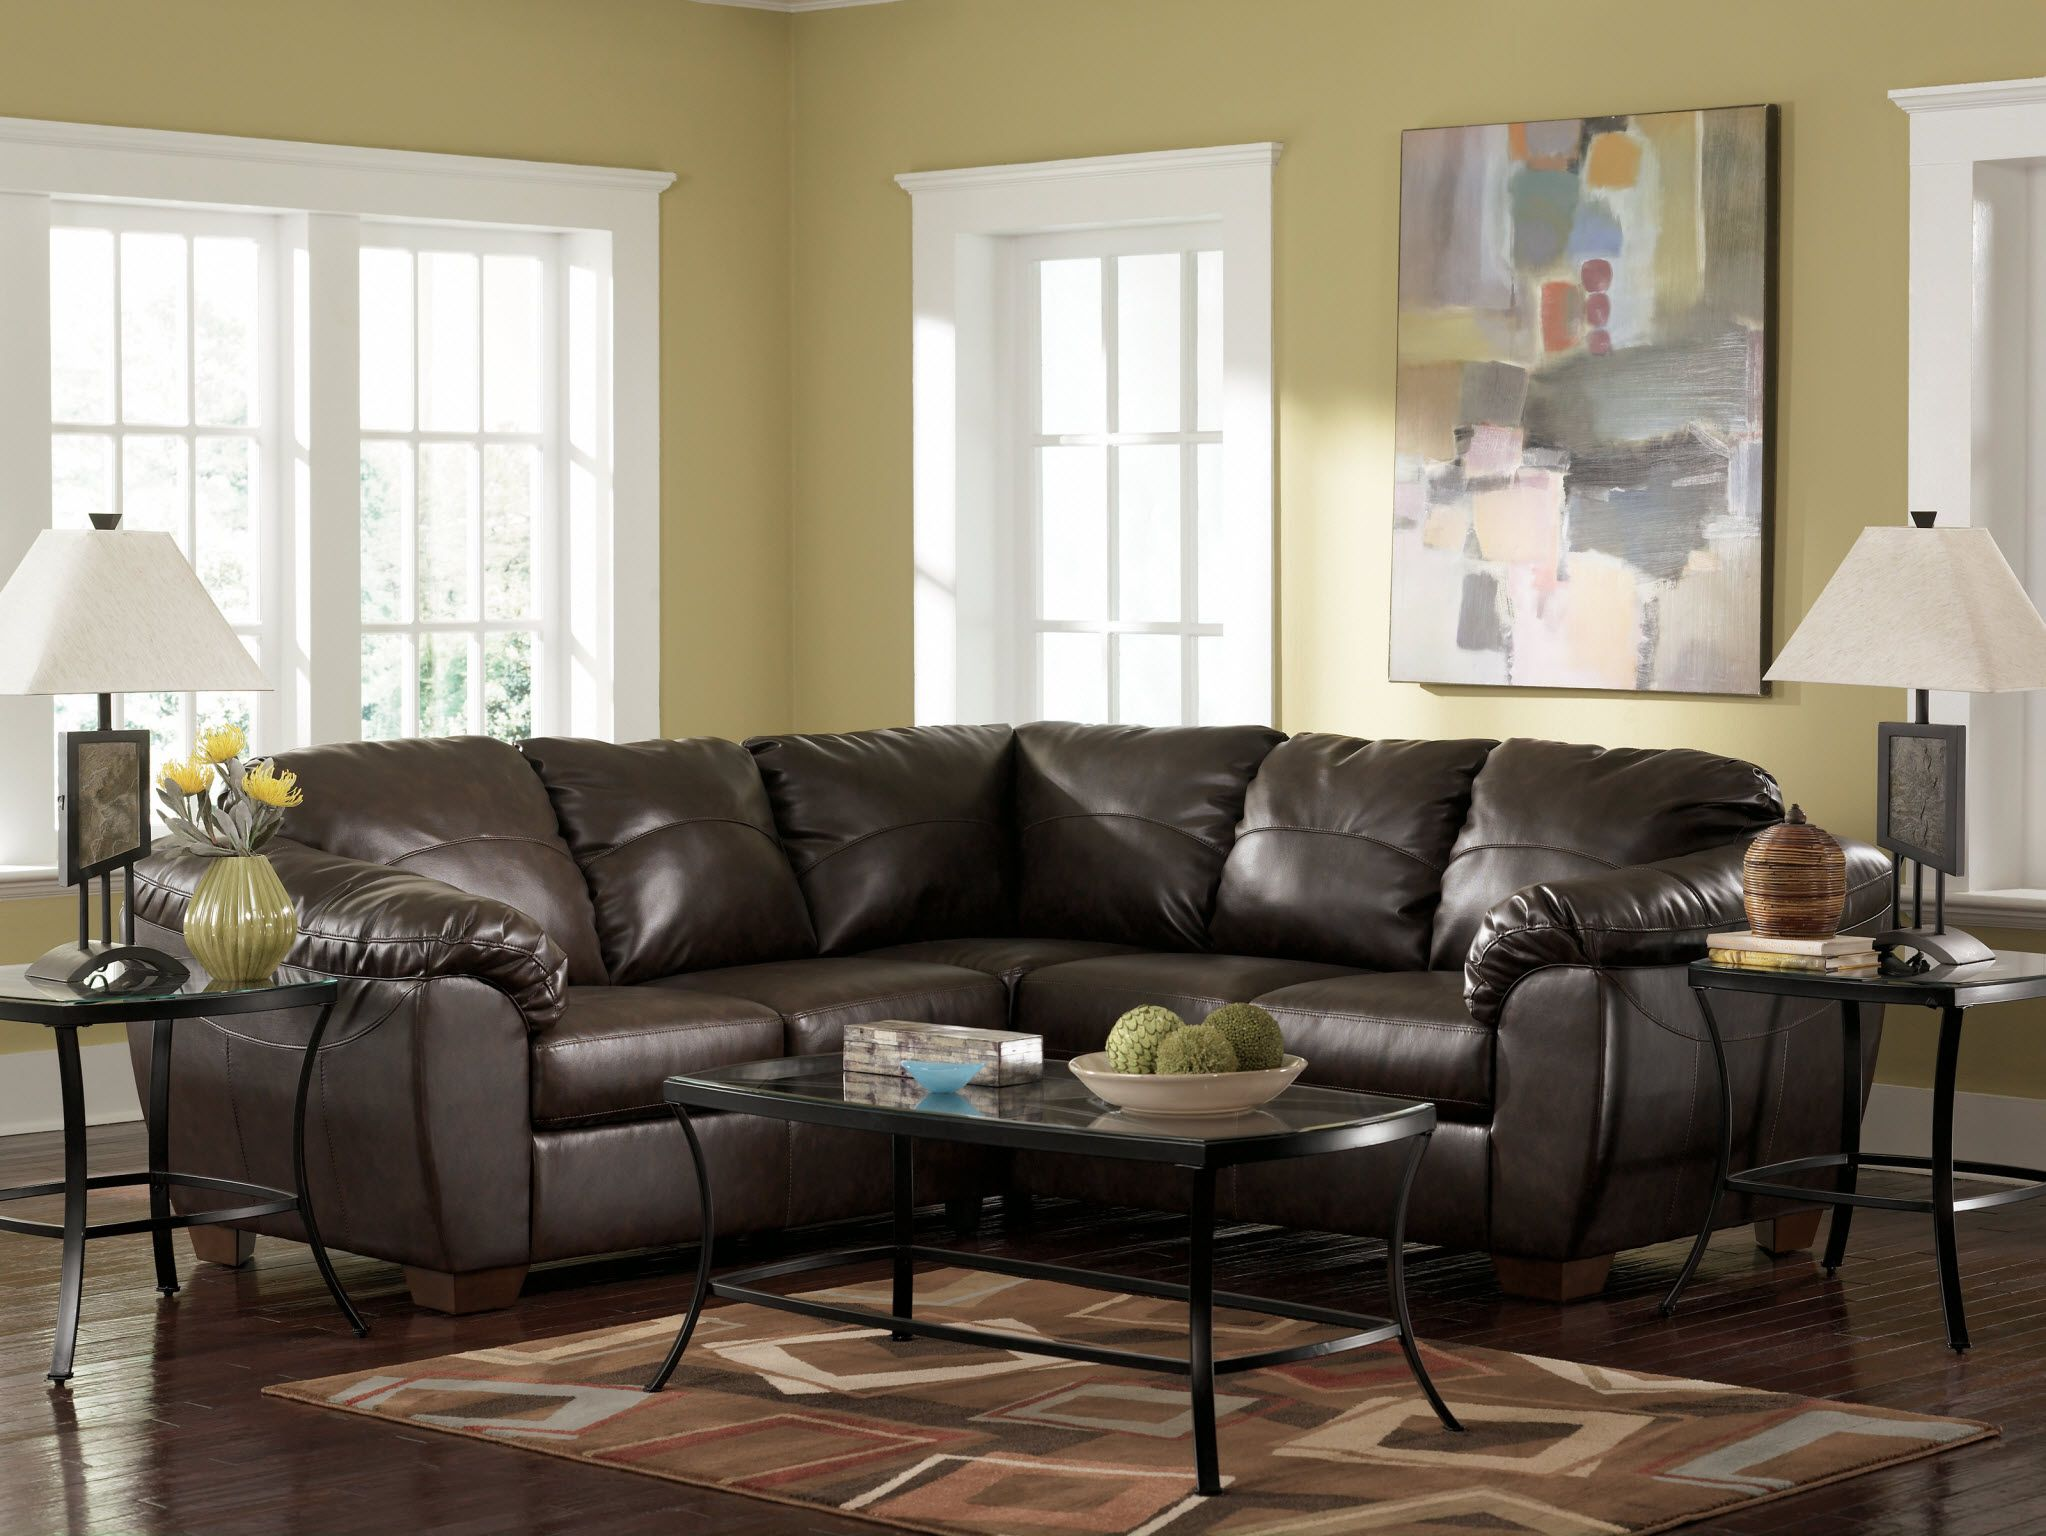 Durablend Sectional Sofa and Love Seat by Ashley Furniture